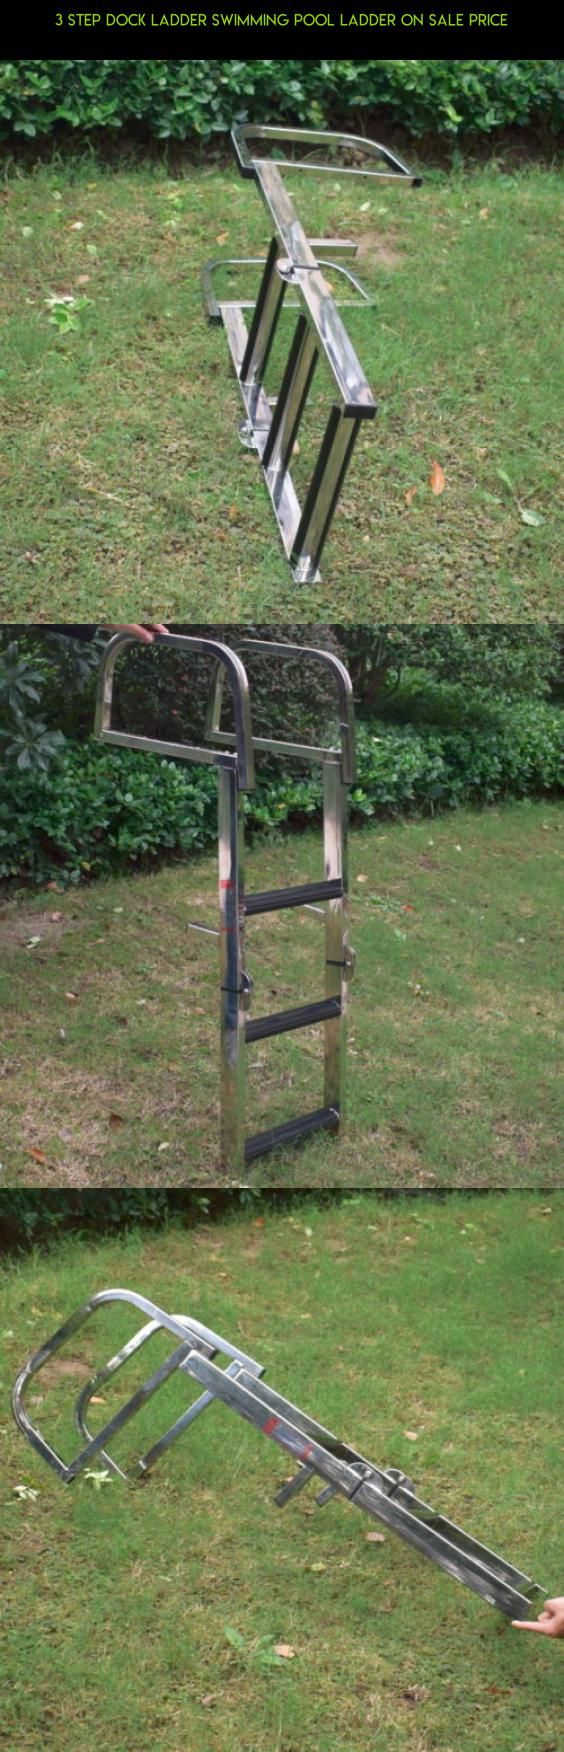 3 Step Dock Ladder Swimming Pool Ladder On Sale Price #drone #shopping #fpv #products #sale #on #plans #parts #kit #technology #camera #pools #gadgets #racing #tech